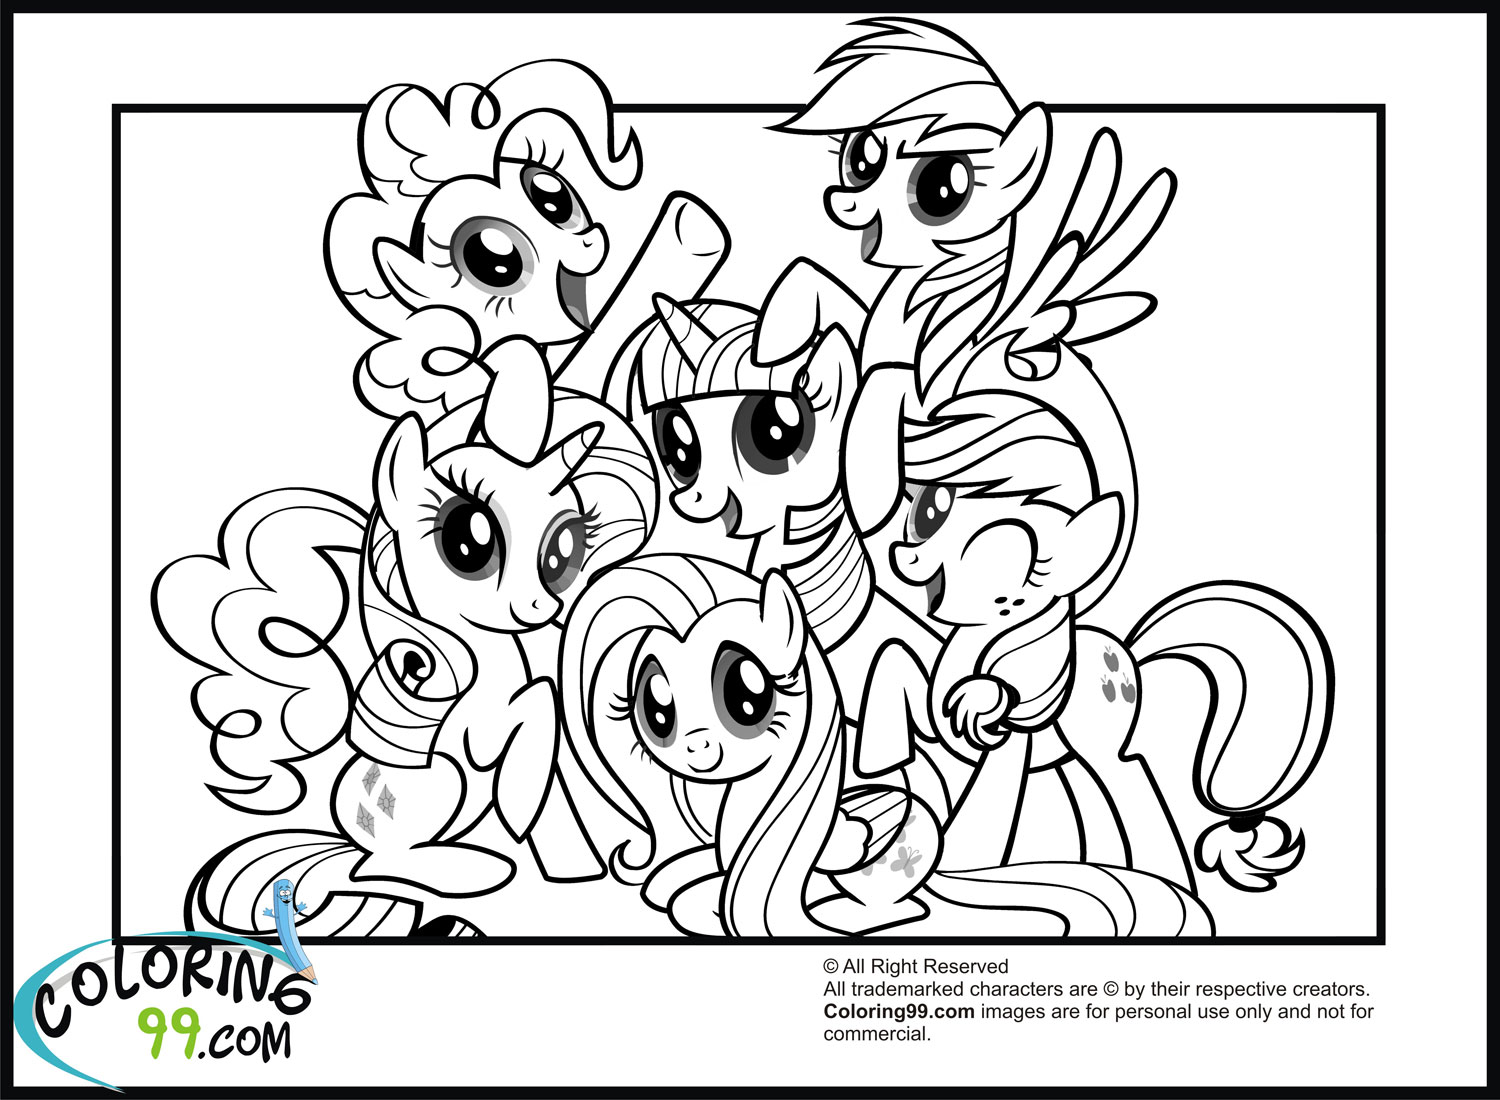 Fancy My Little Pony Friendship Is Magic Coloring Pages 24 In Free